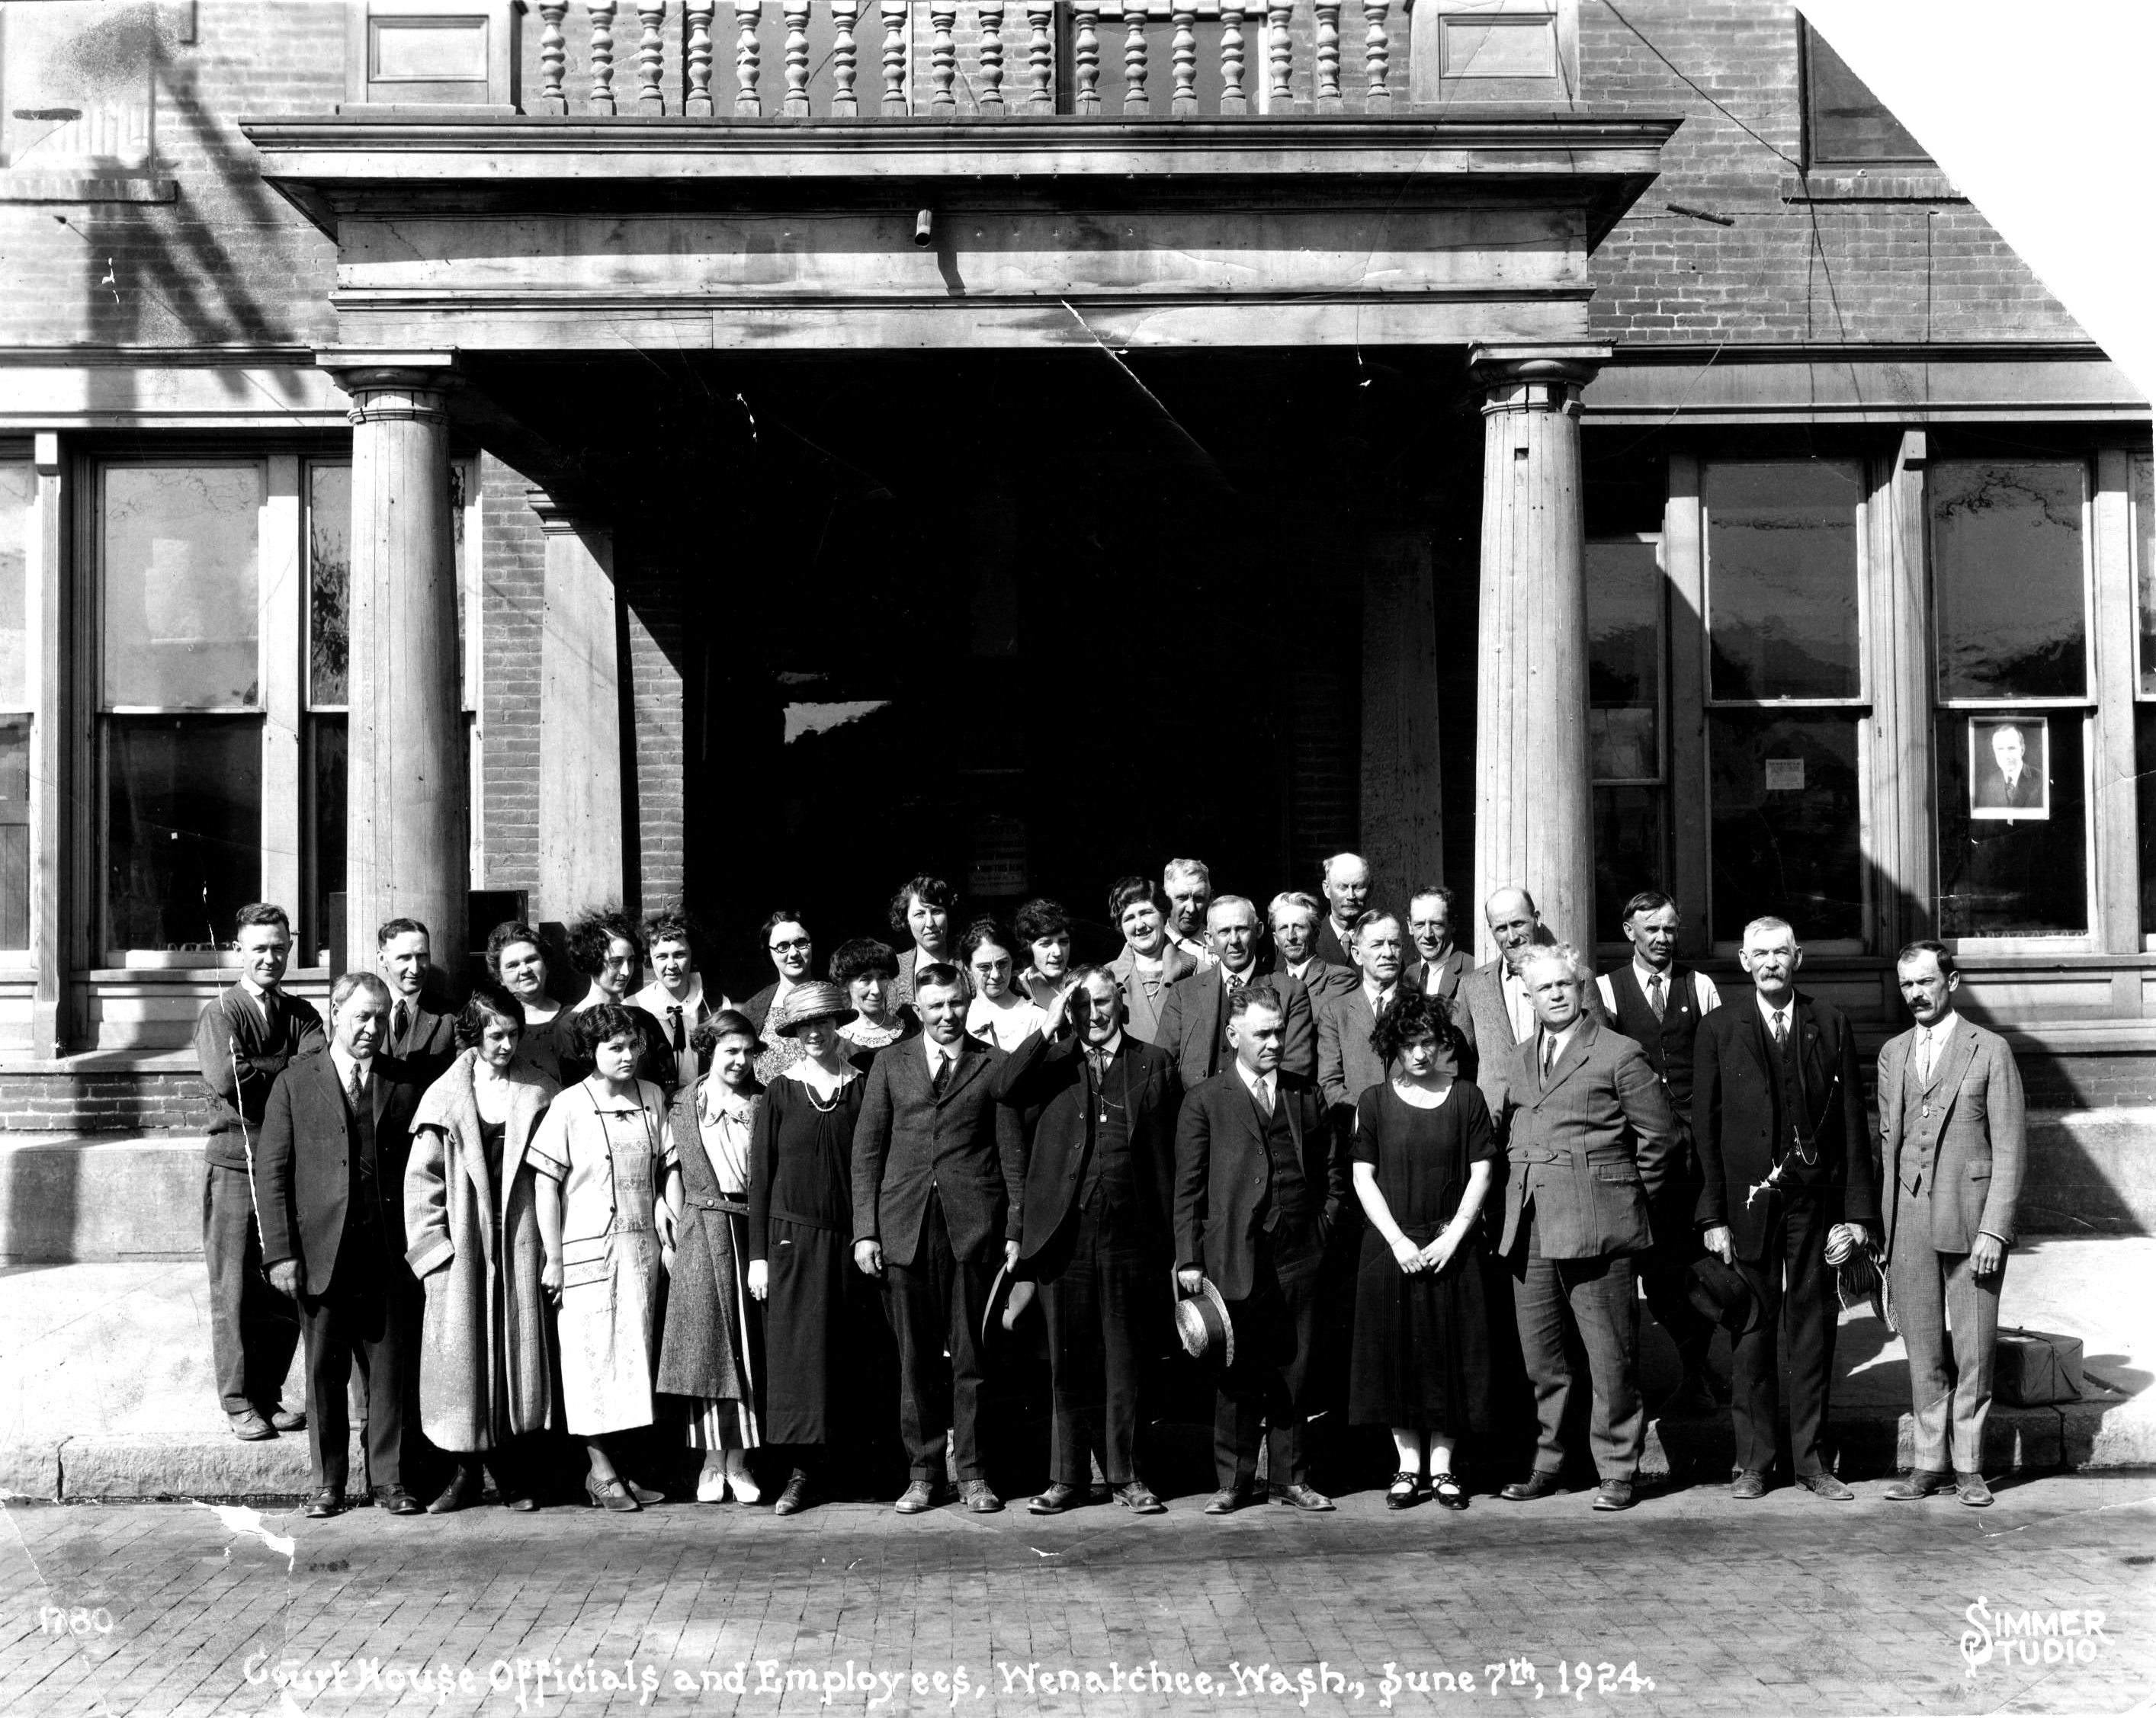 Chelan County officials and employees standing in front of the Chelan County Courthouse on Wenatchee Avenue, June 7th, 1924.  Moved to the new Chelan County Courthouse on June 9th, 1924.   Front row: L. D. Brown, State Examiner; Rachel McCroskey; Neva Martin (married name, Coppess); Helen Merriam (married name, Smith); Madge Cushing; E. C. Bowersox; J. H. (Jake) Miller; R. A. (Dick) Scheble; Fern Armstrong (married name, Collis); W. F. Buttles; Jack Dietch.   Second Row: Bill Luce; A. V. Shephard; Mrs. E. C. Bowersox; Grace McElhoe; Kathleen Beggs; Bessie Lewis (Mrs. E. G. Spencer); ?Chas. E. Buttles?; John Godfrey; Roy Larson; E. G. Spencer.   Third Row: Irene Trexler (married name, Jensen); Pearl Hall; Amy Johnson (married name, Stach); Mae Wanka; W. O. Tillman; unknown.   Four Row: Joe Parks; Howard Honner.